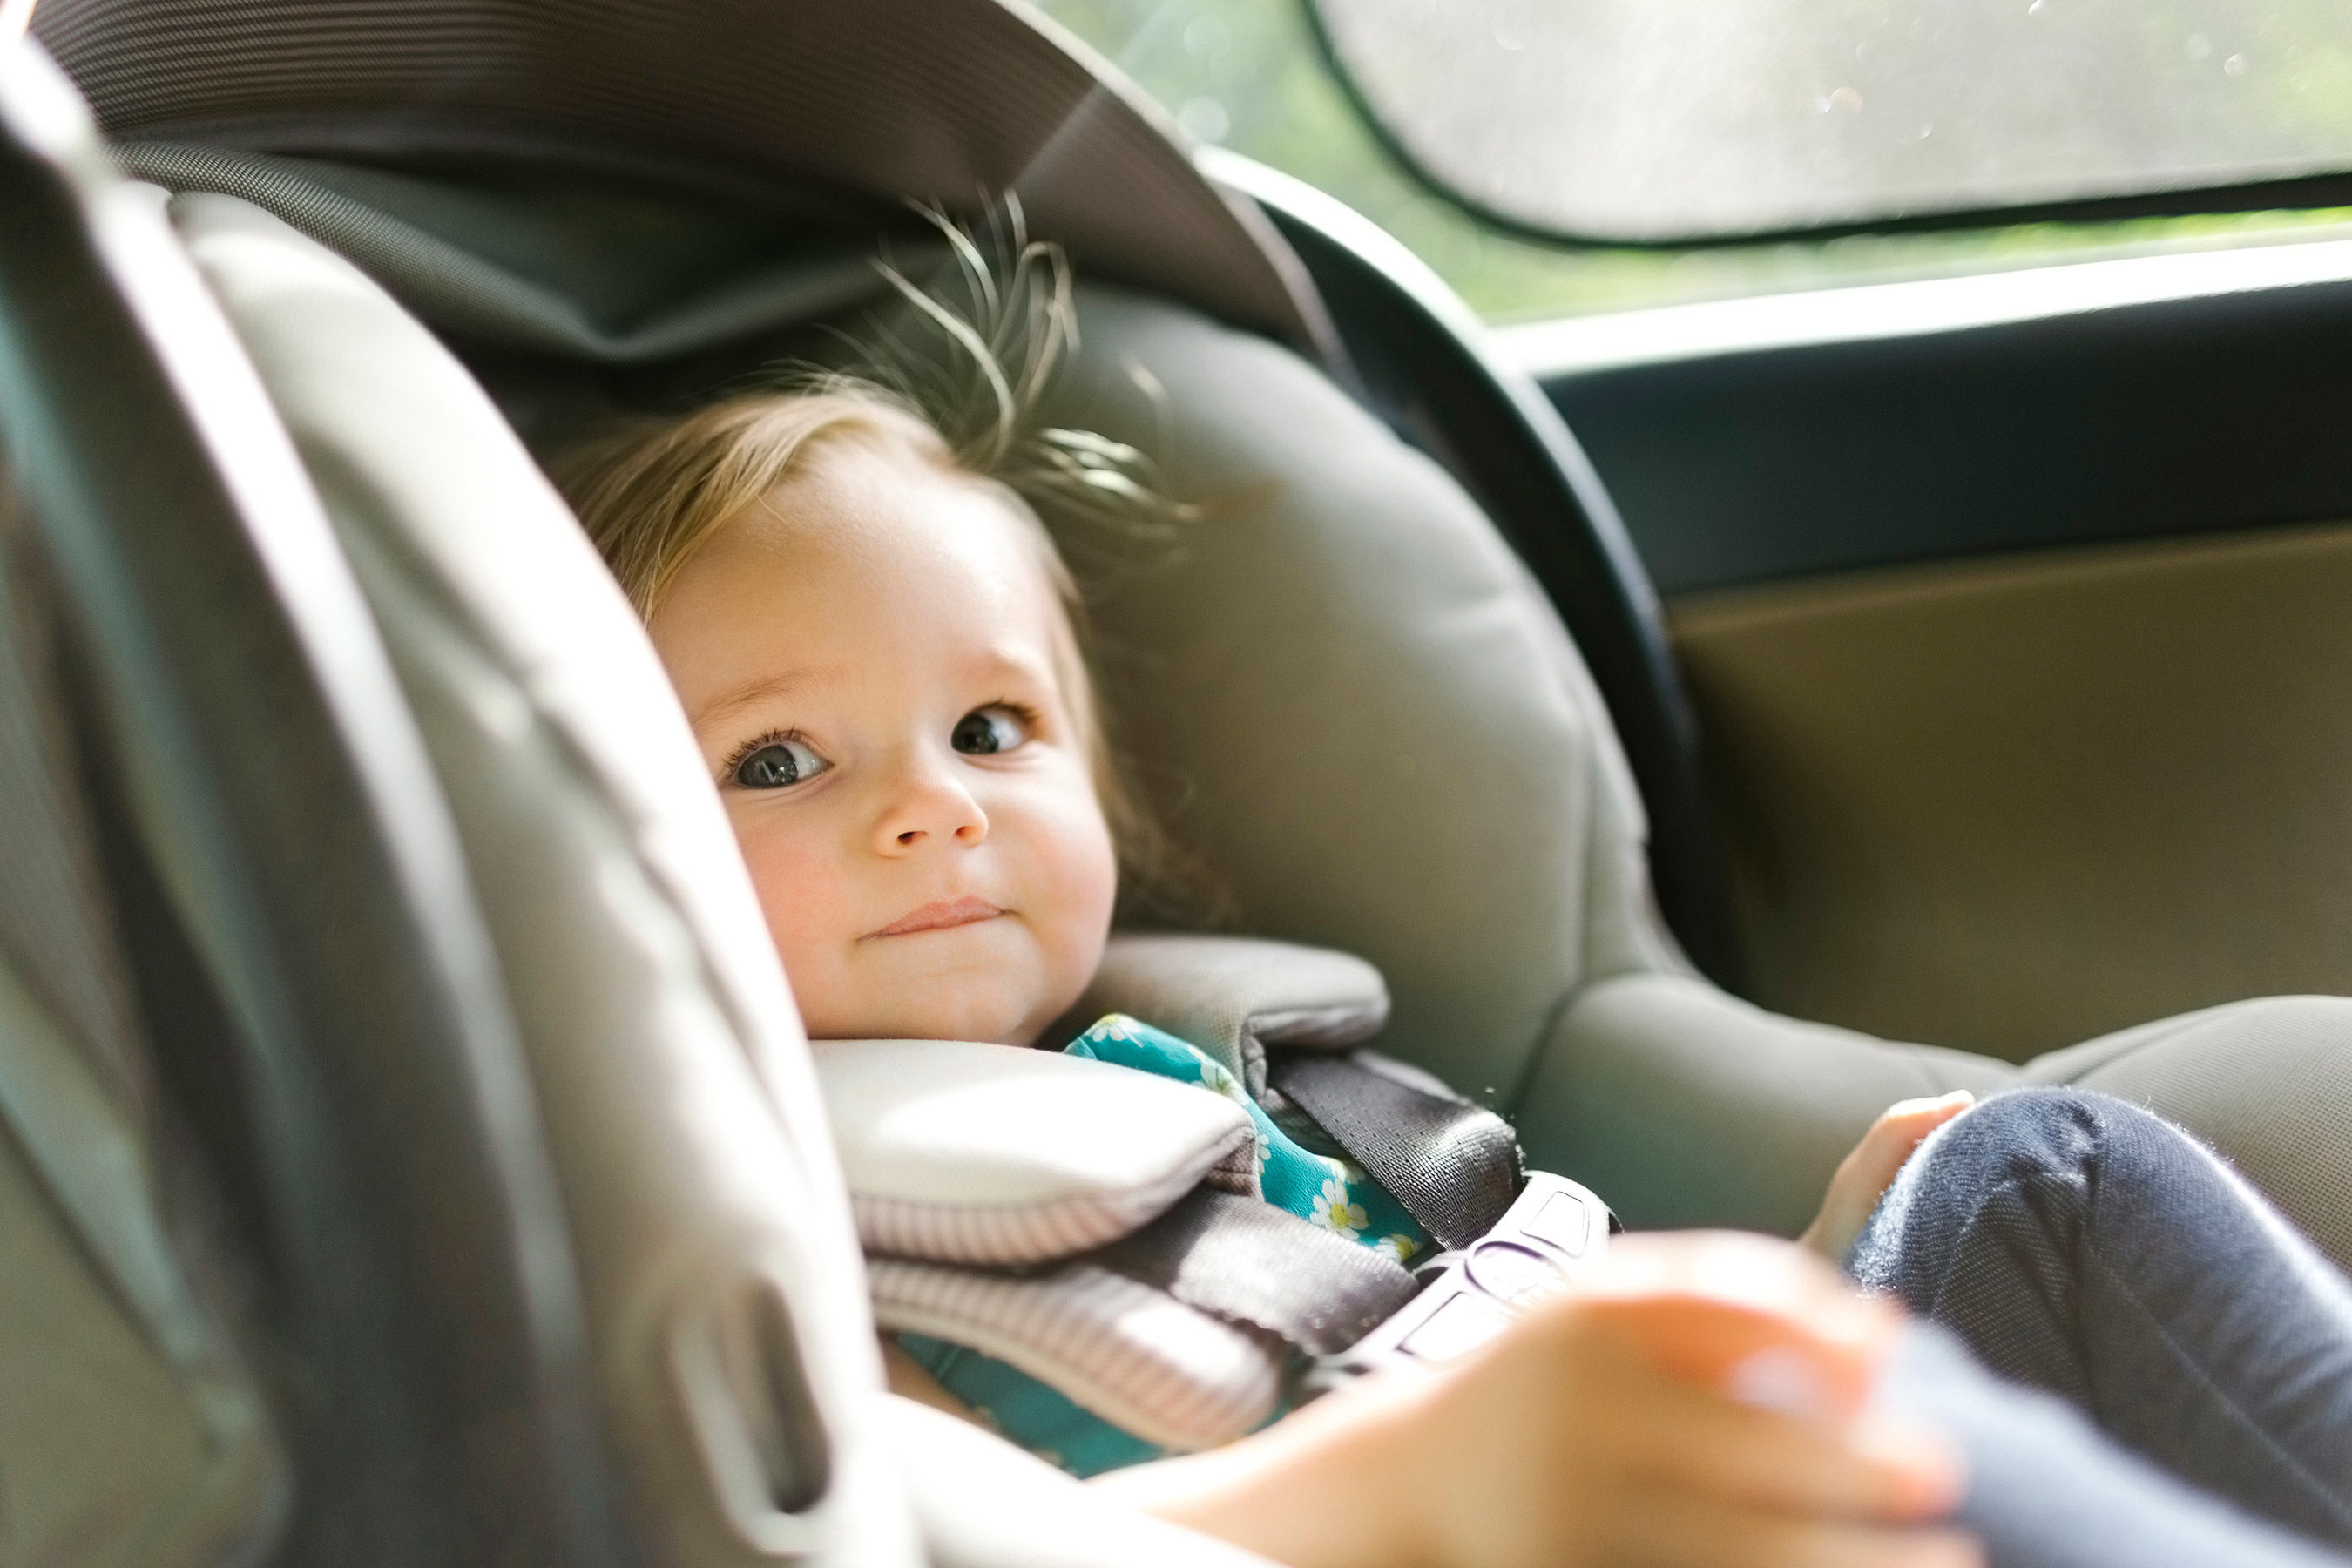 Walmart Offers Customers Gift Cards in Exchange for Recycling Car Seats — How to Trade Yours In